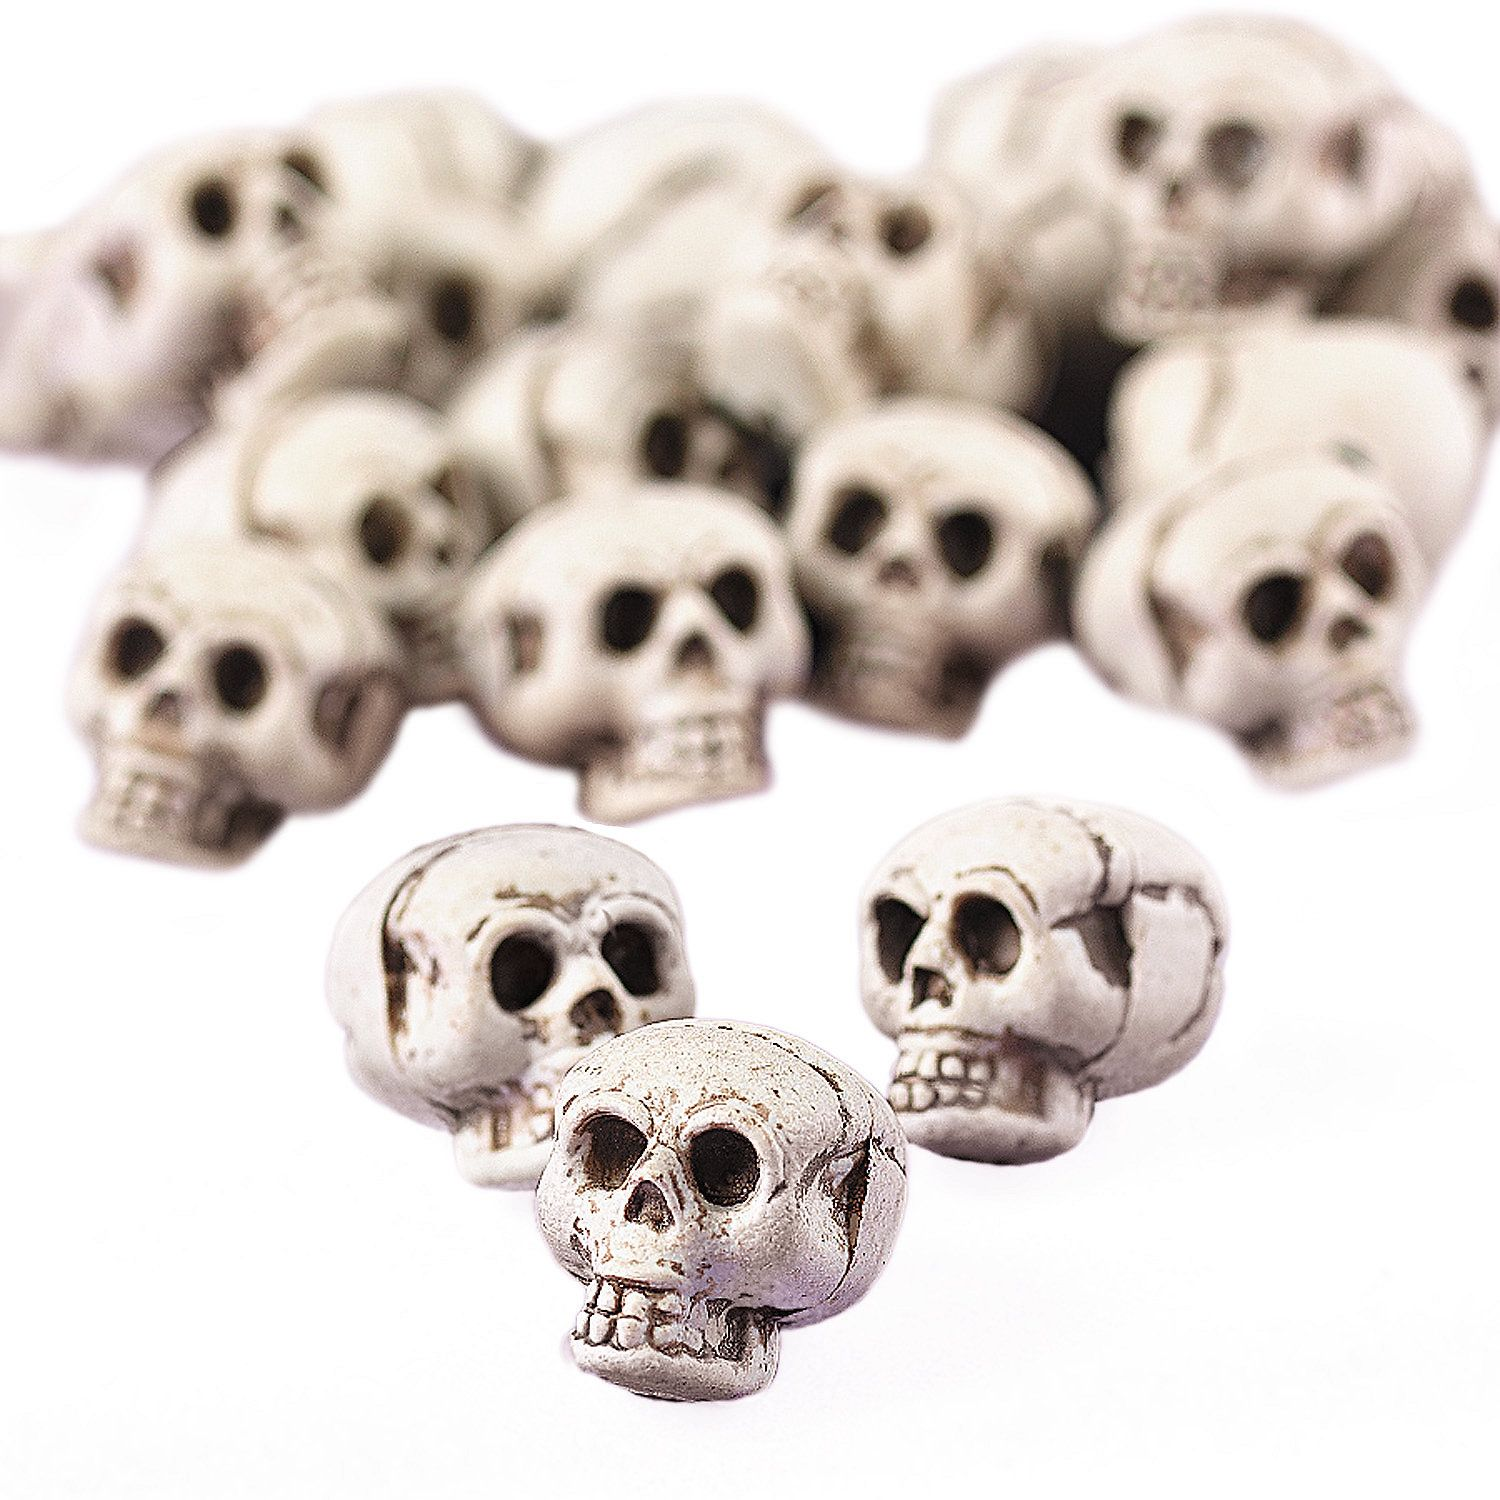 Mini Skulls - OrientalTrading.com - $6.25 for 24 pcs - this is exactly what I'd love to add to my mini animal skulls!